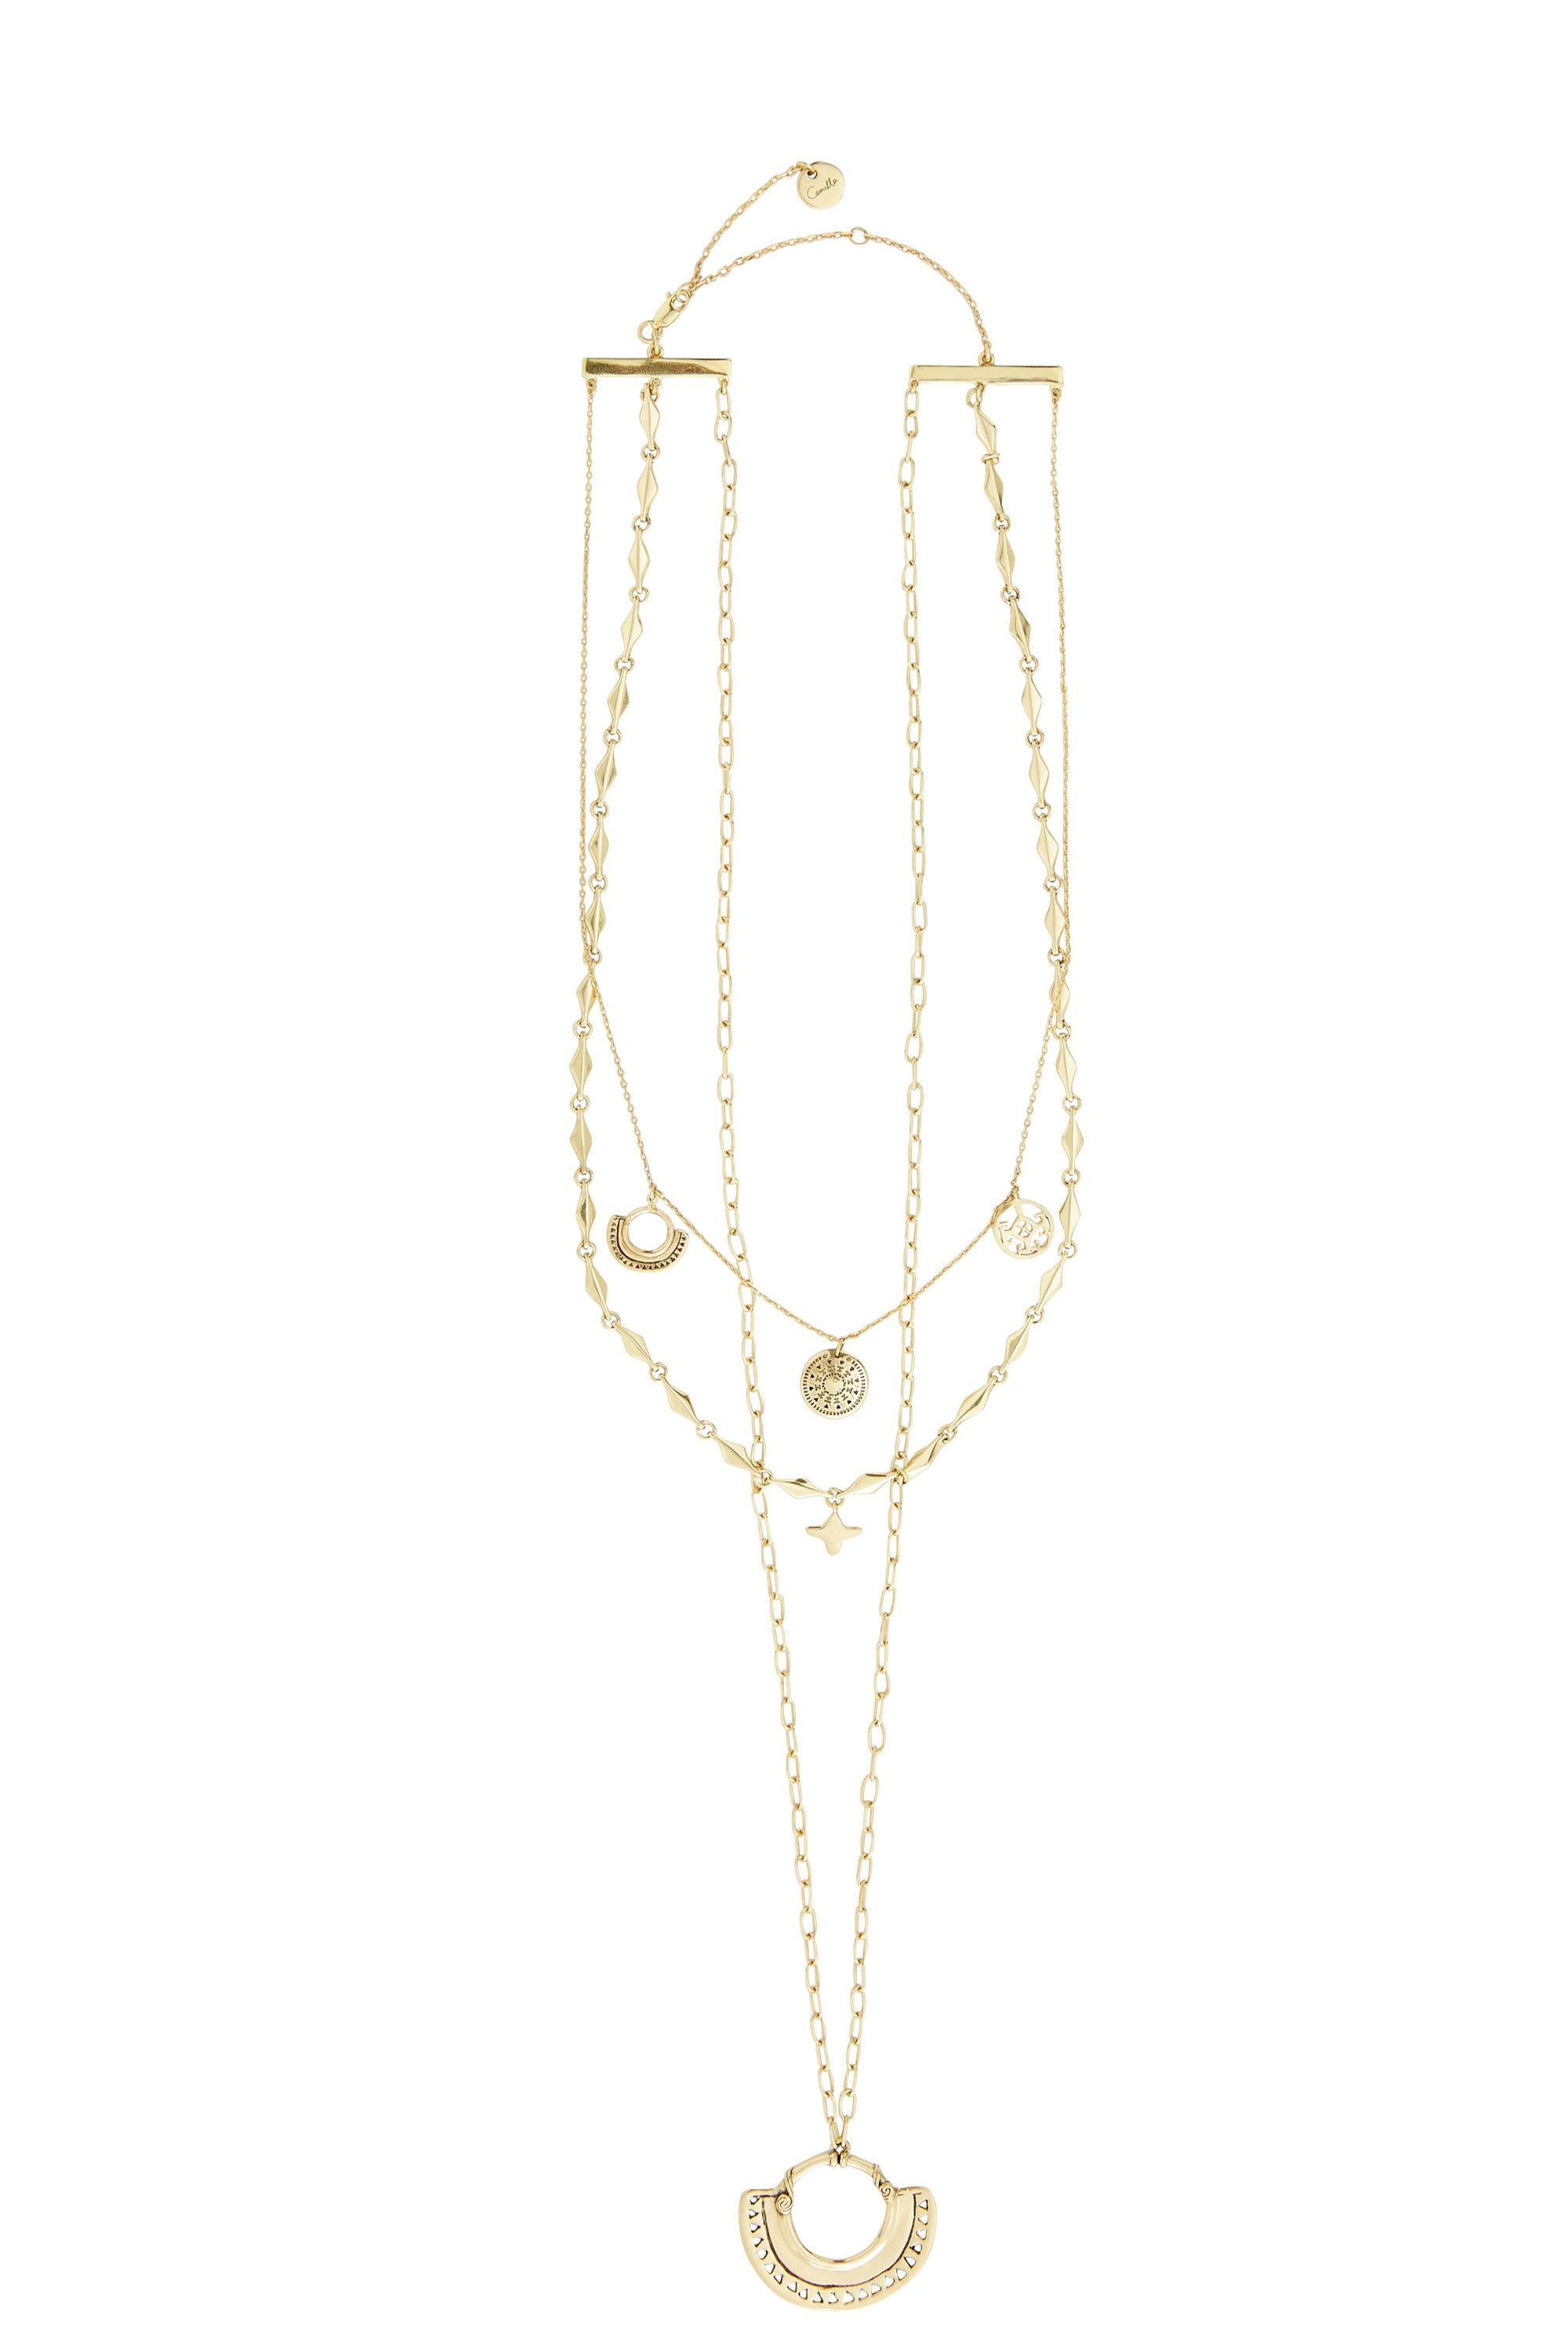 GOLD BRASS LAYERED CHAIN NECKLACE